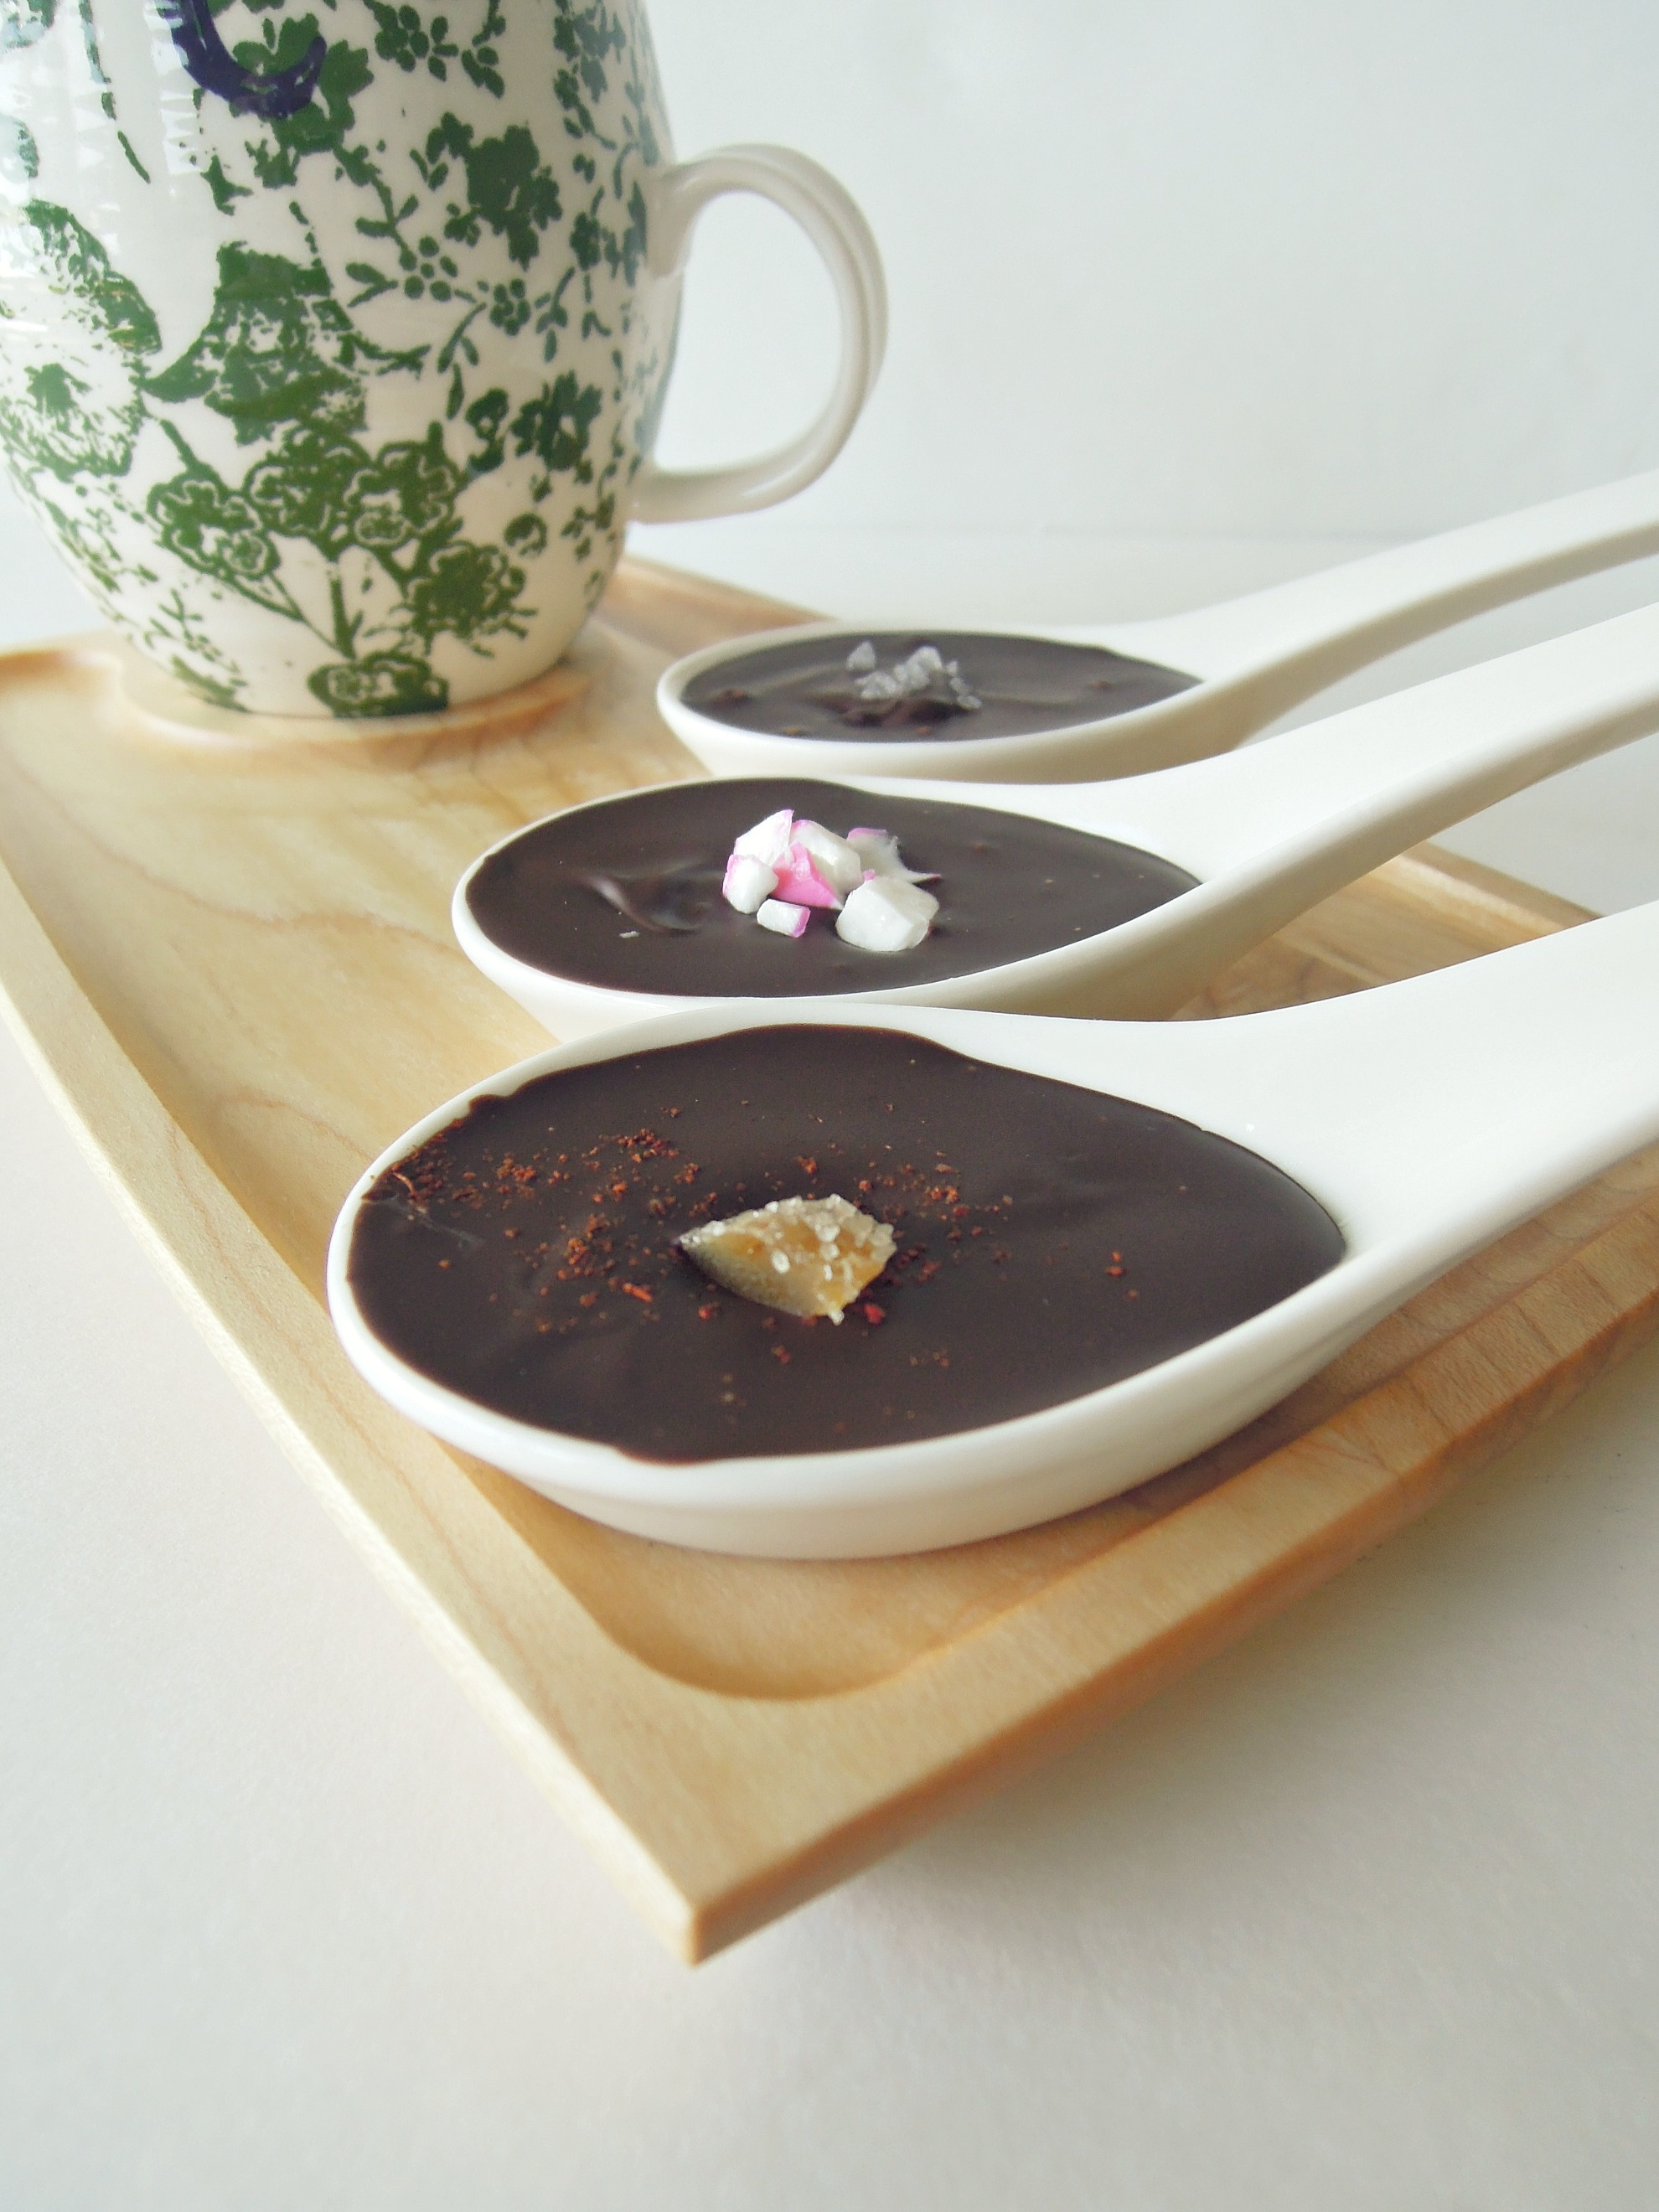 Vegan Chocolate-Covered Spoons